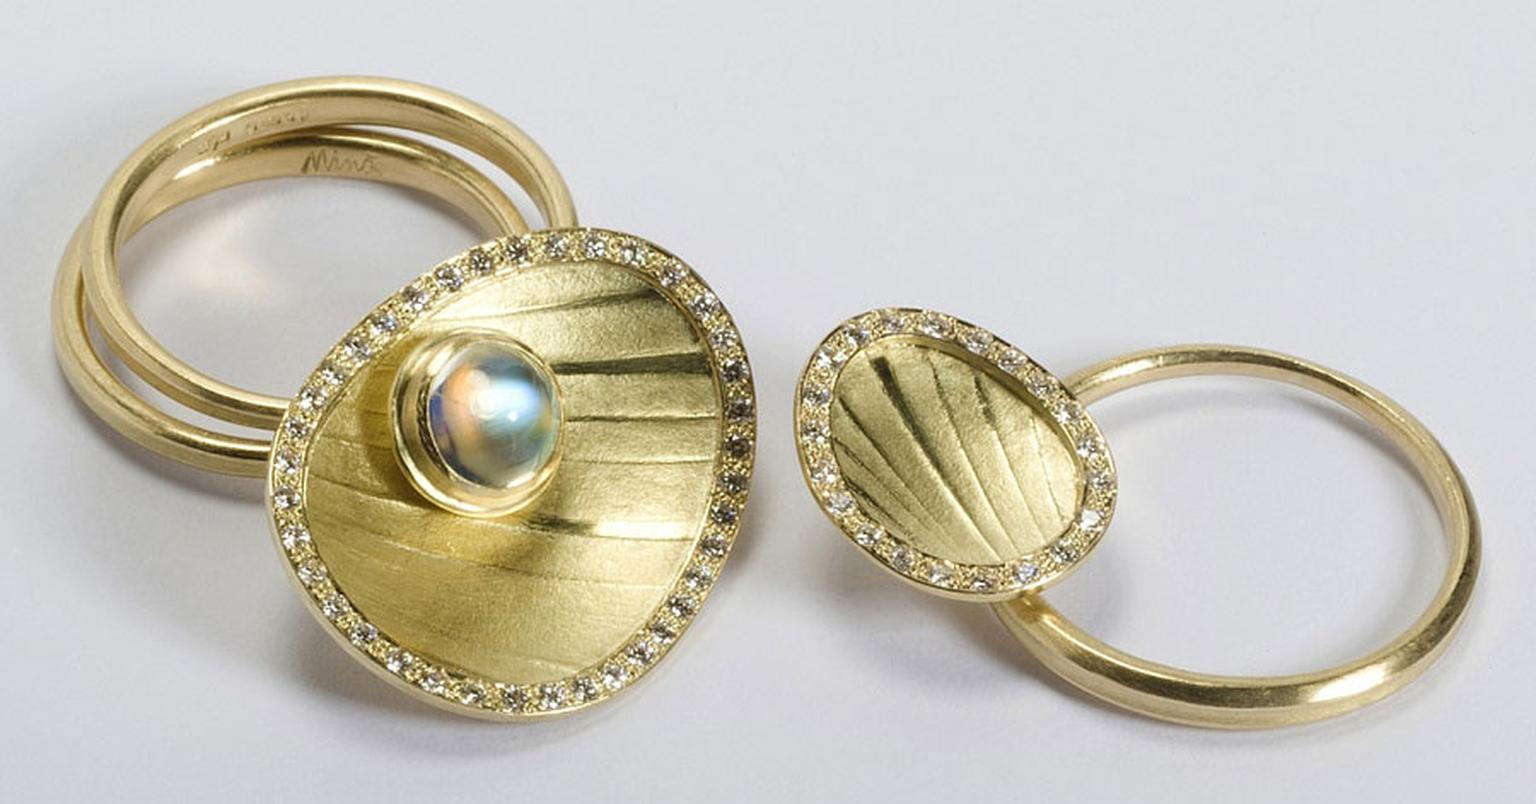 Kath Libbert. Jacqueline-Mina_Ring-set-in-18ct-gold-with-moonstone-&-diamonds_Photo-N-Mason